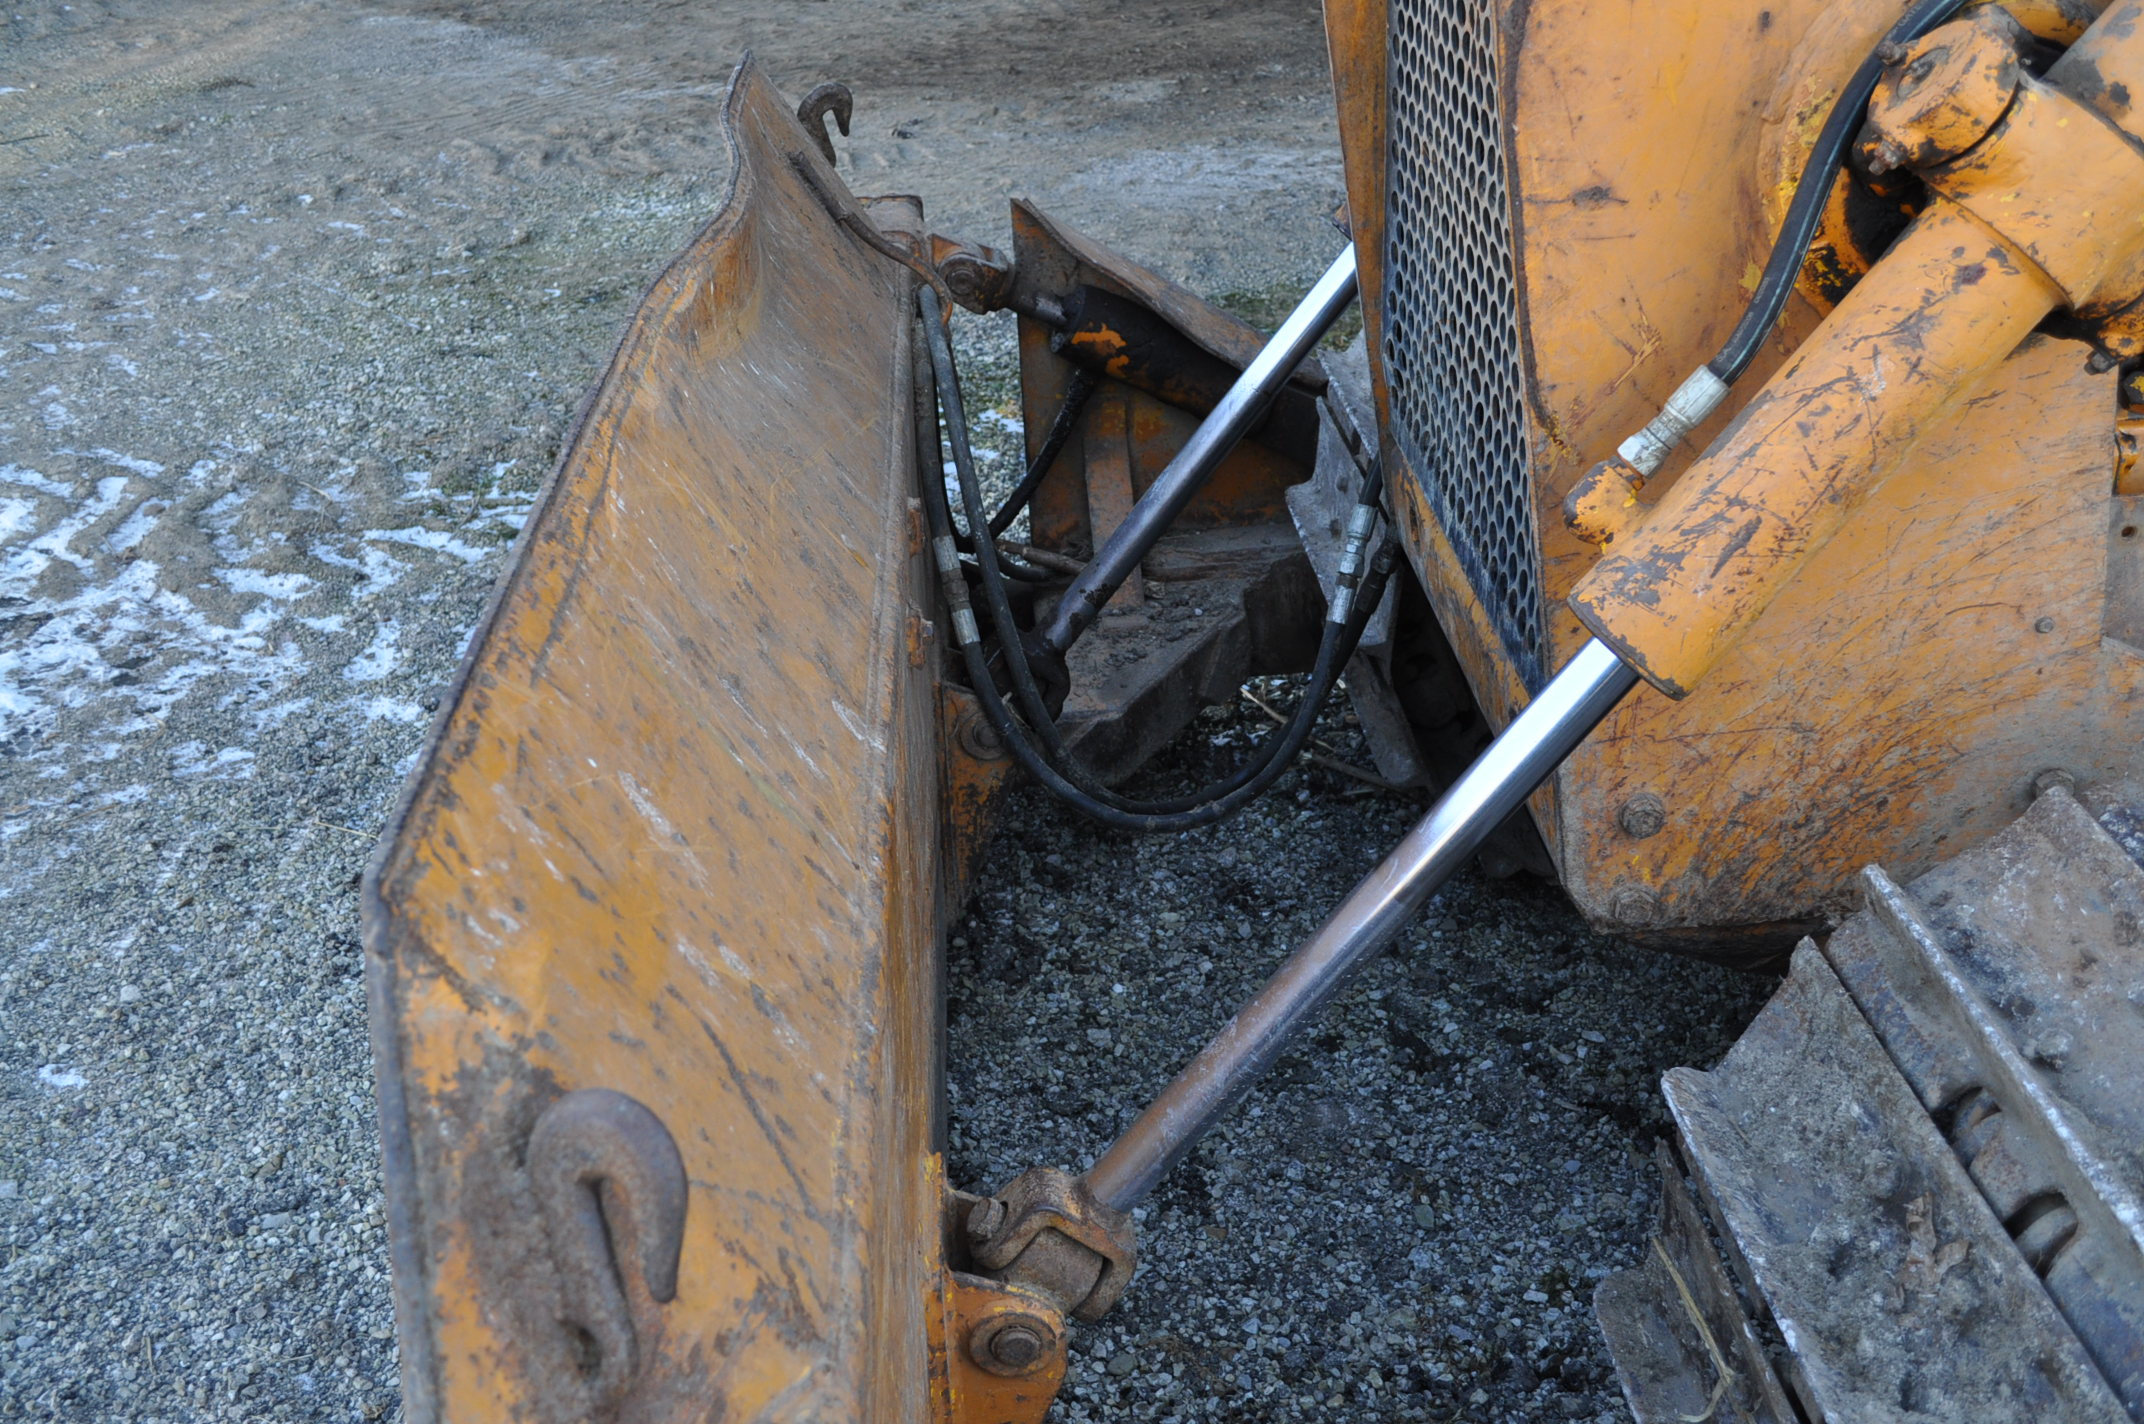 Case 1150 dozer, 8' 4 way blade, rear hitch, diesel, shows 1250 hrs, hrs unkown, SN missing - Image 7 of 11